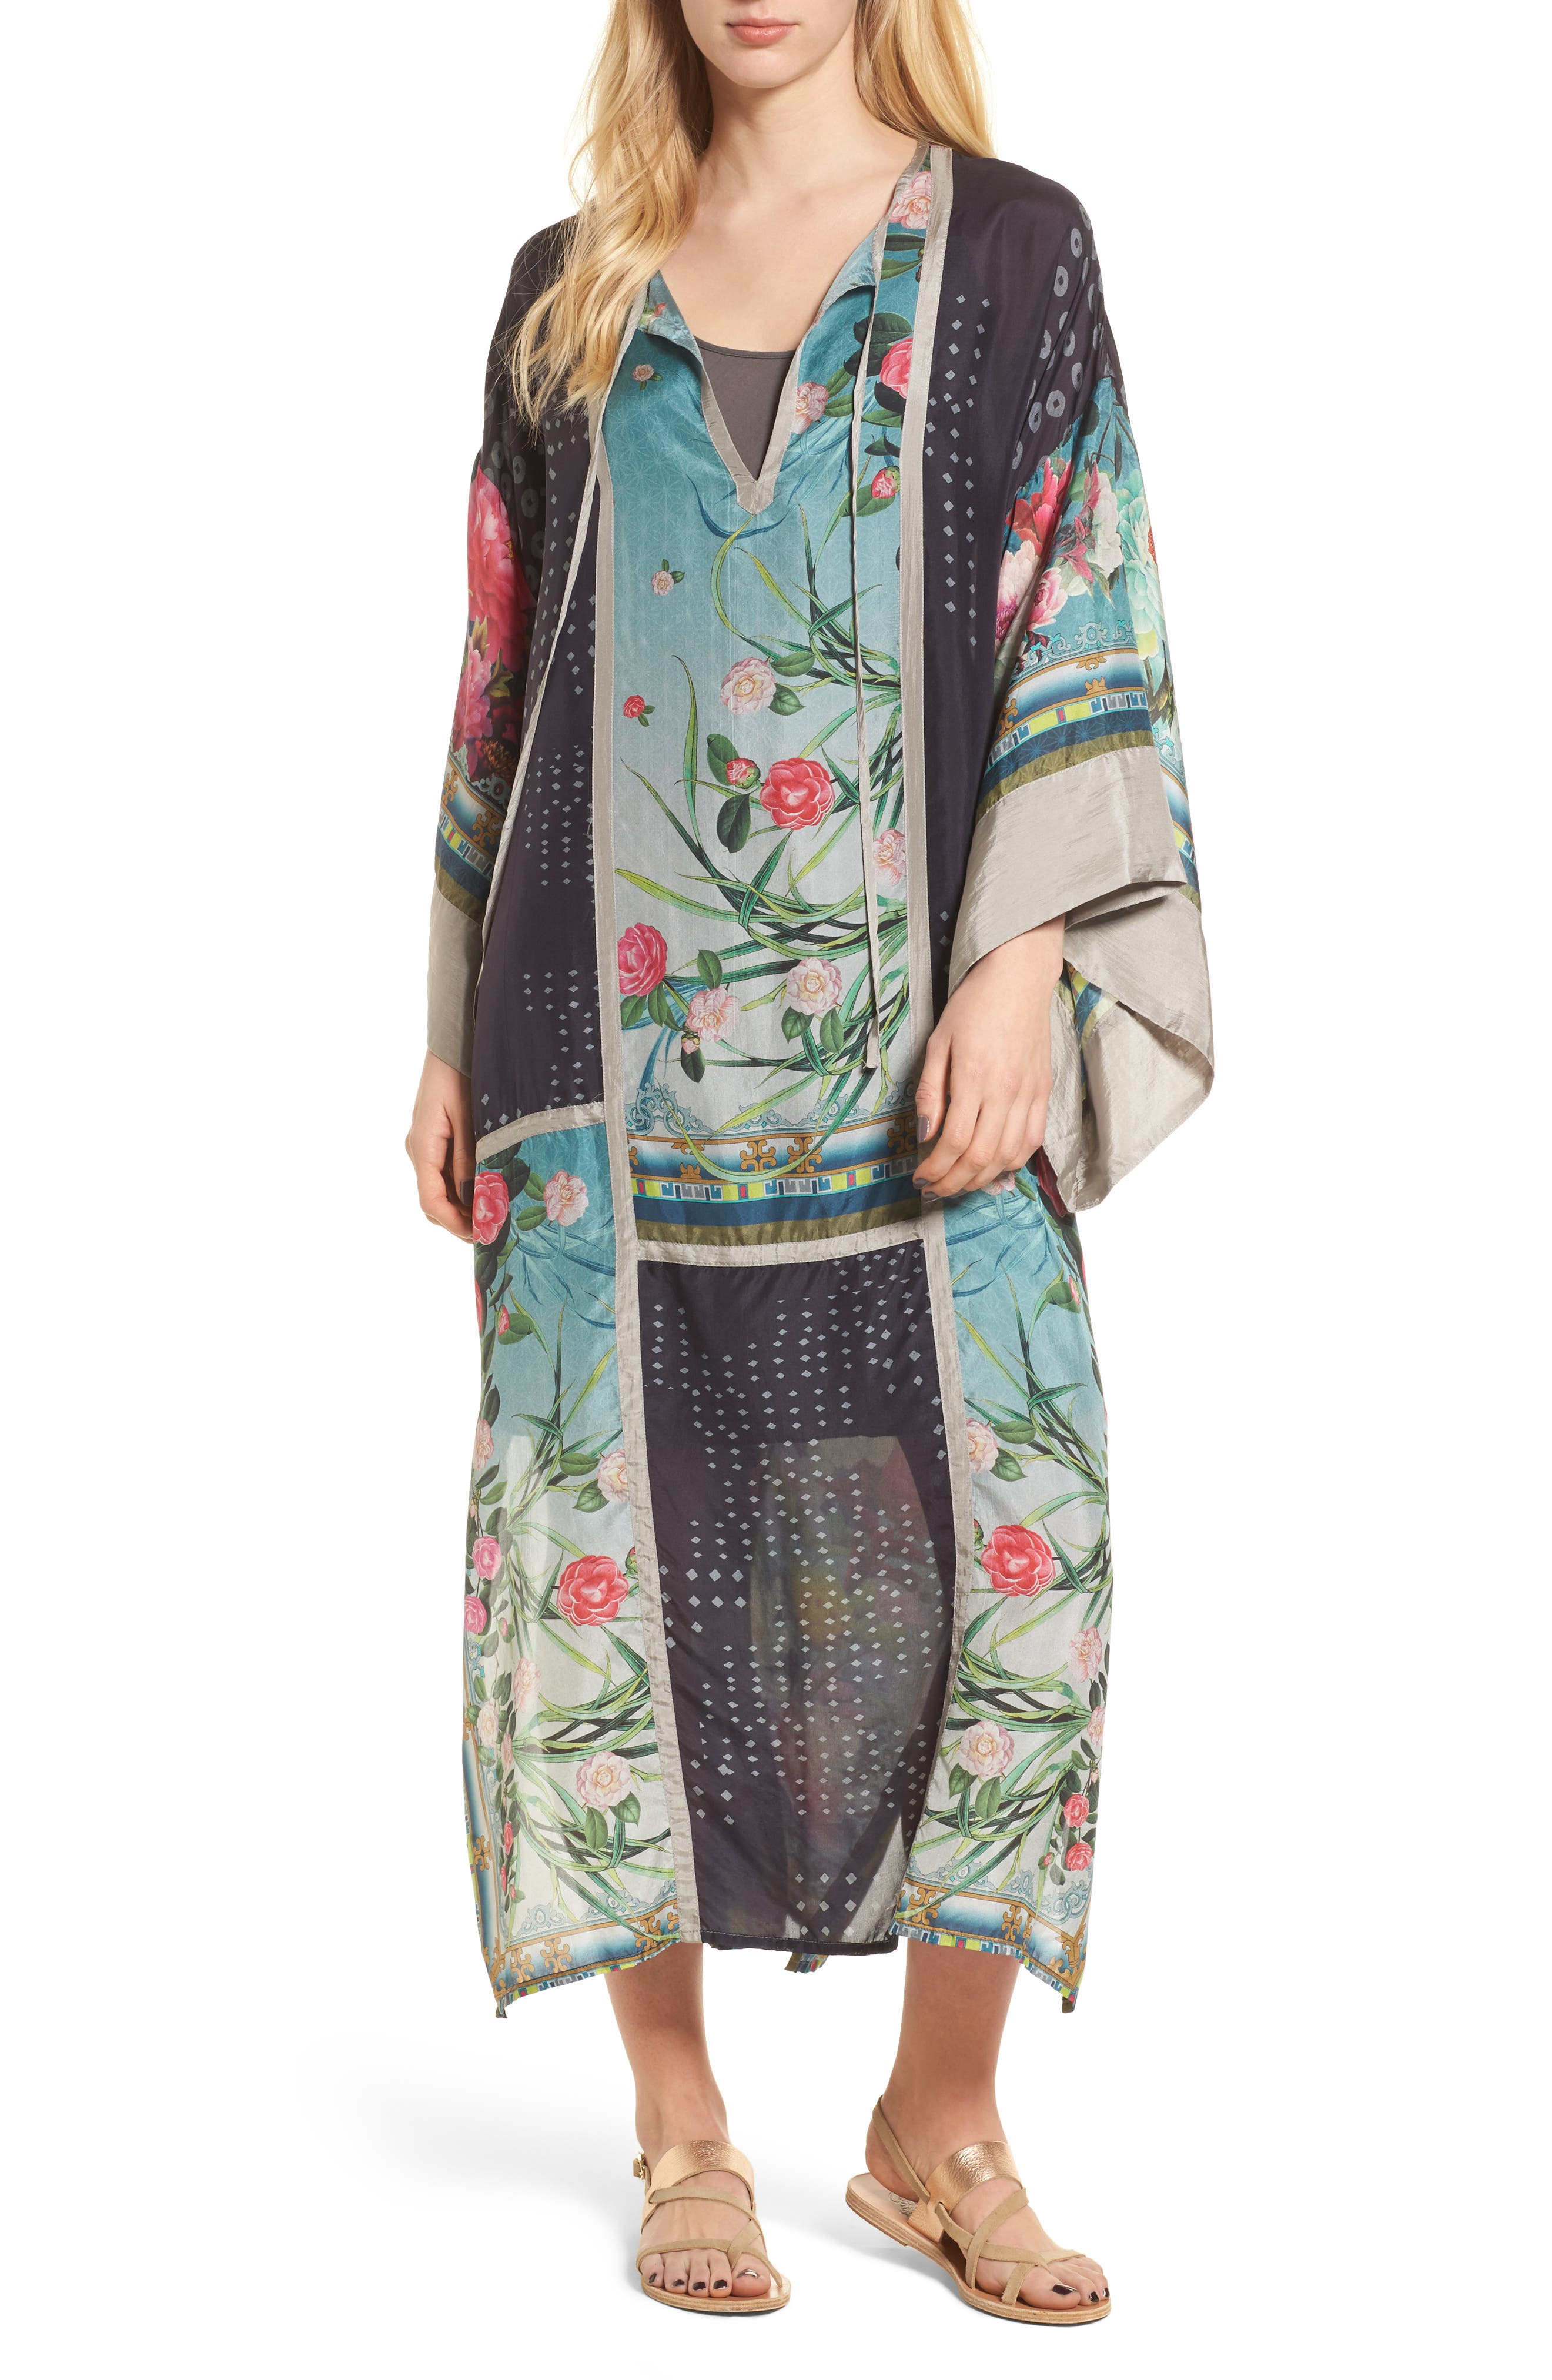 Camuba Heaven Silk Kimono Dress,                             Main thumbnail 1, color,                             010